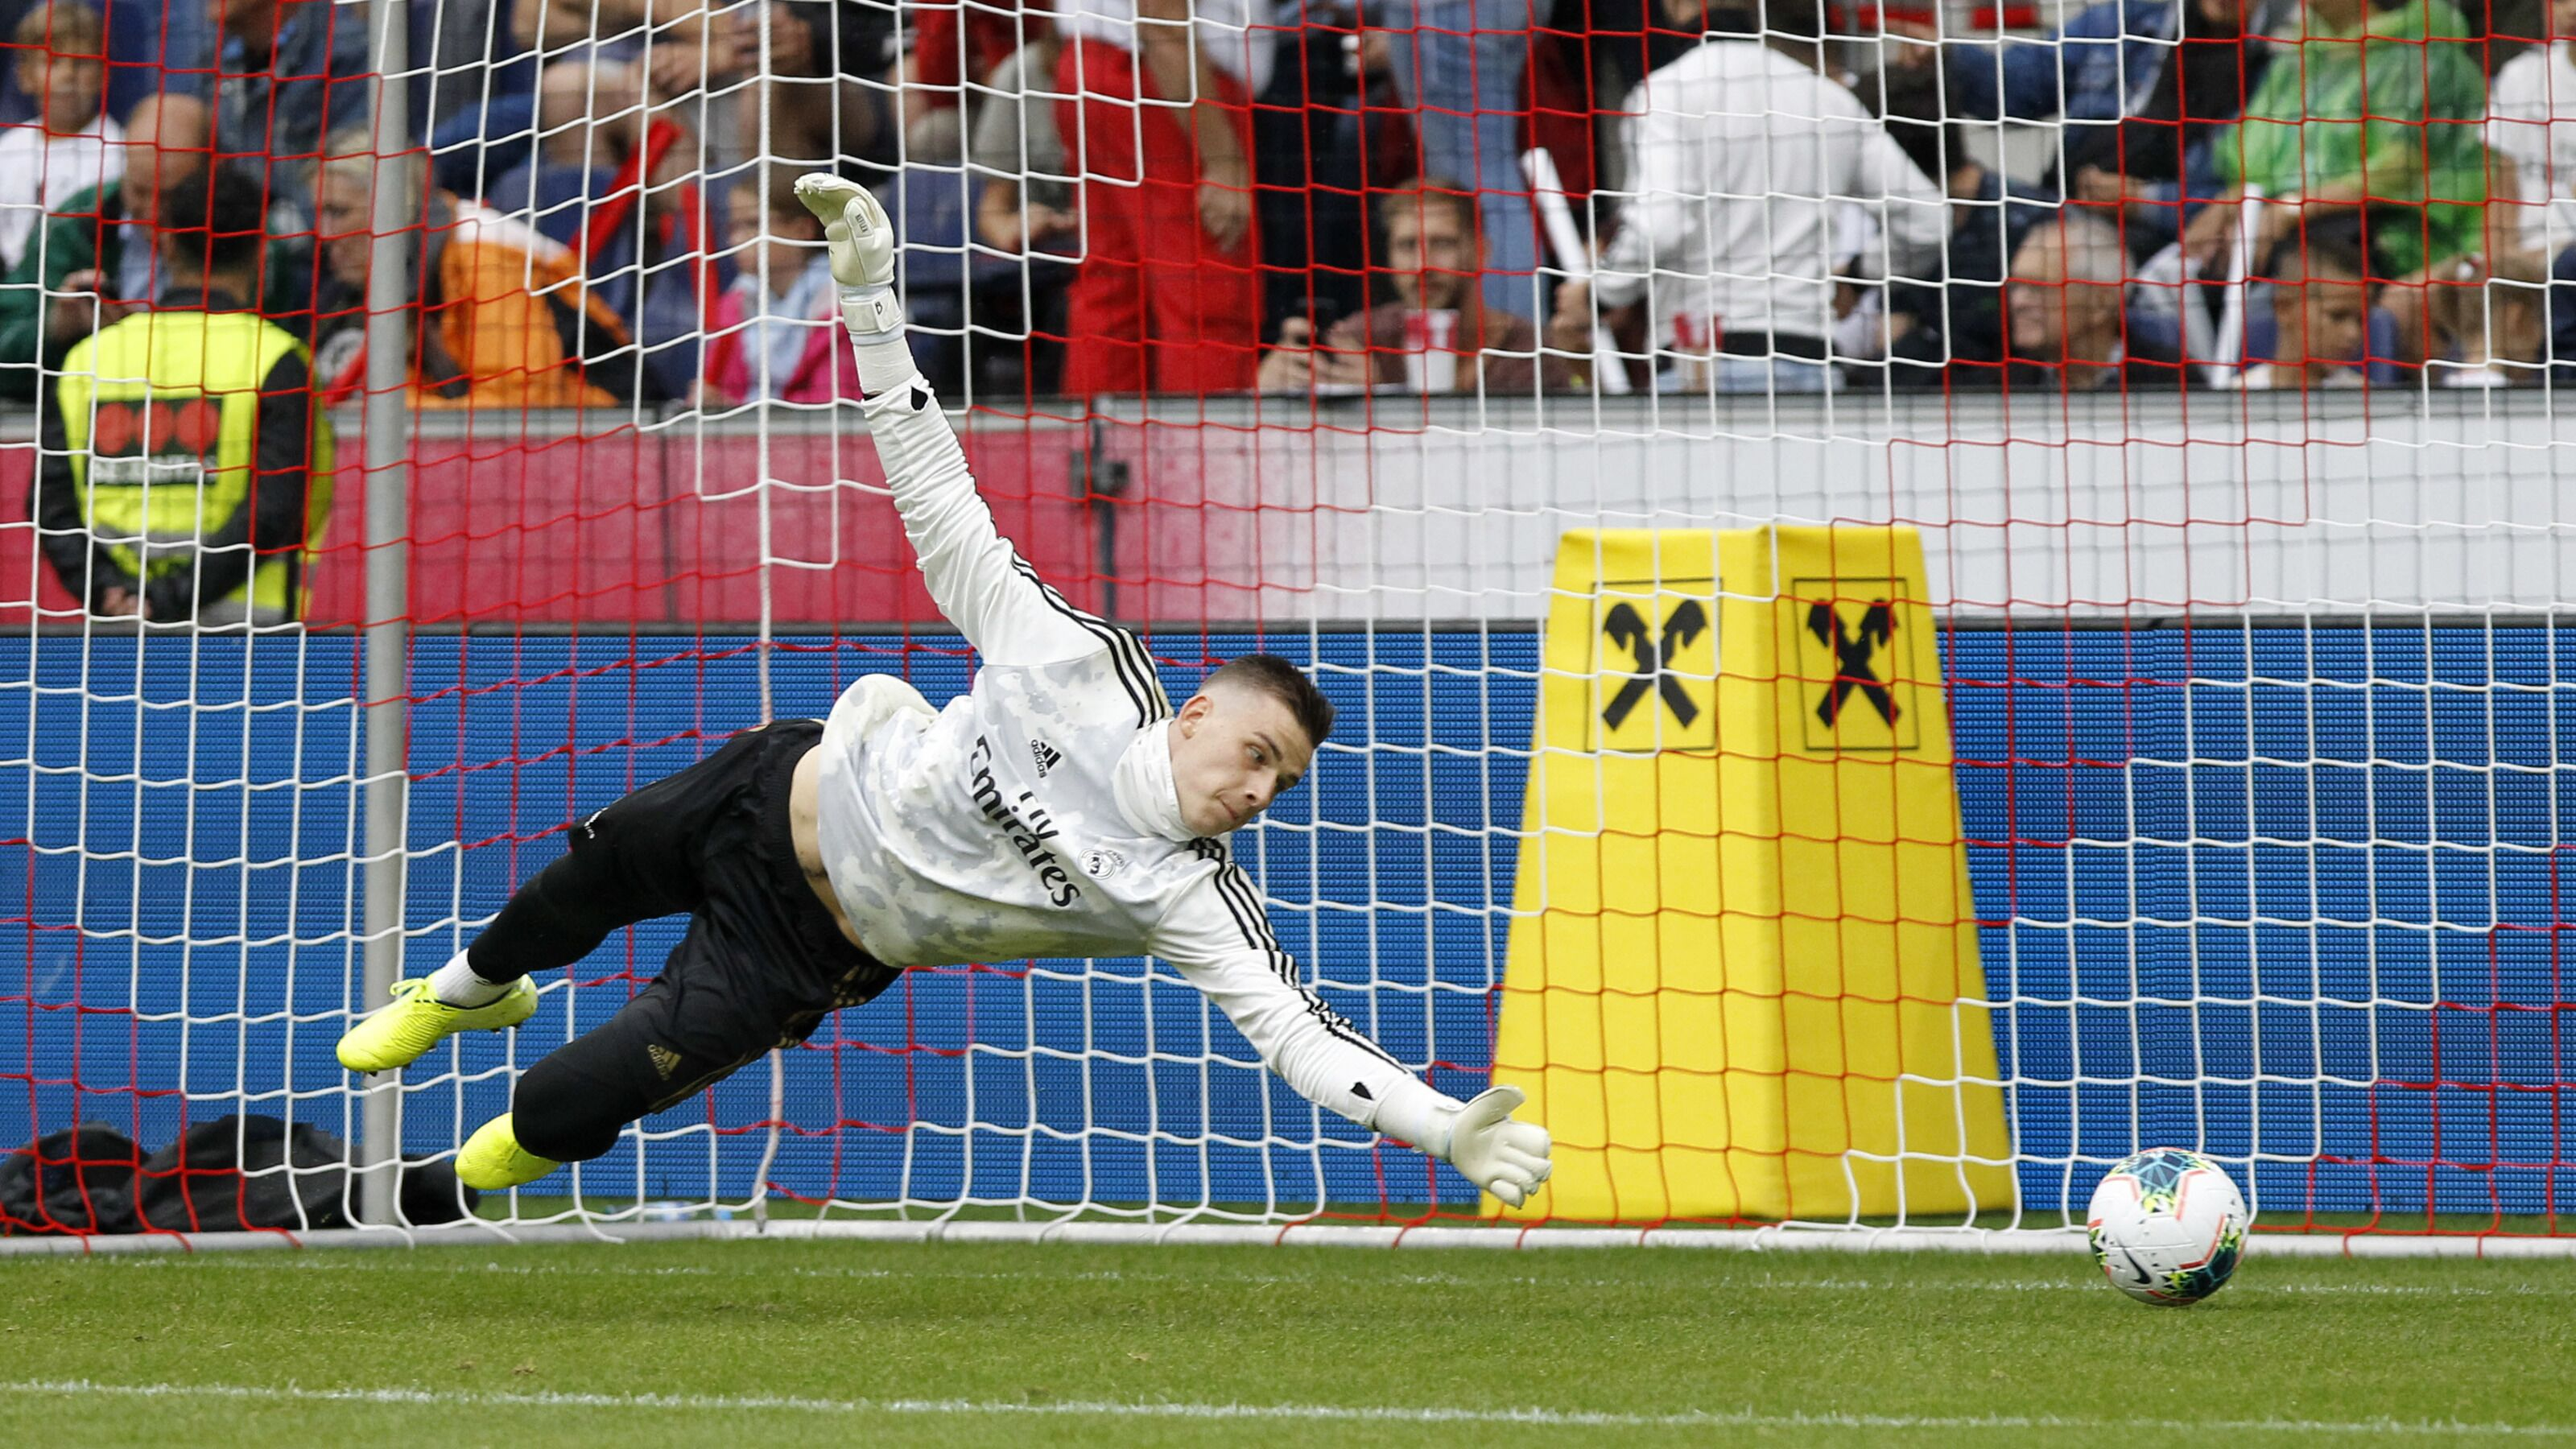 Real Madrid loan goalkeeper Andriy Lunin to Real Valladolid